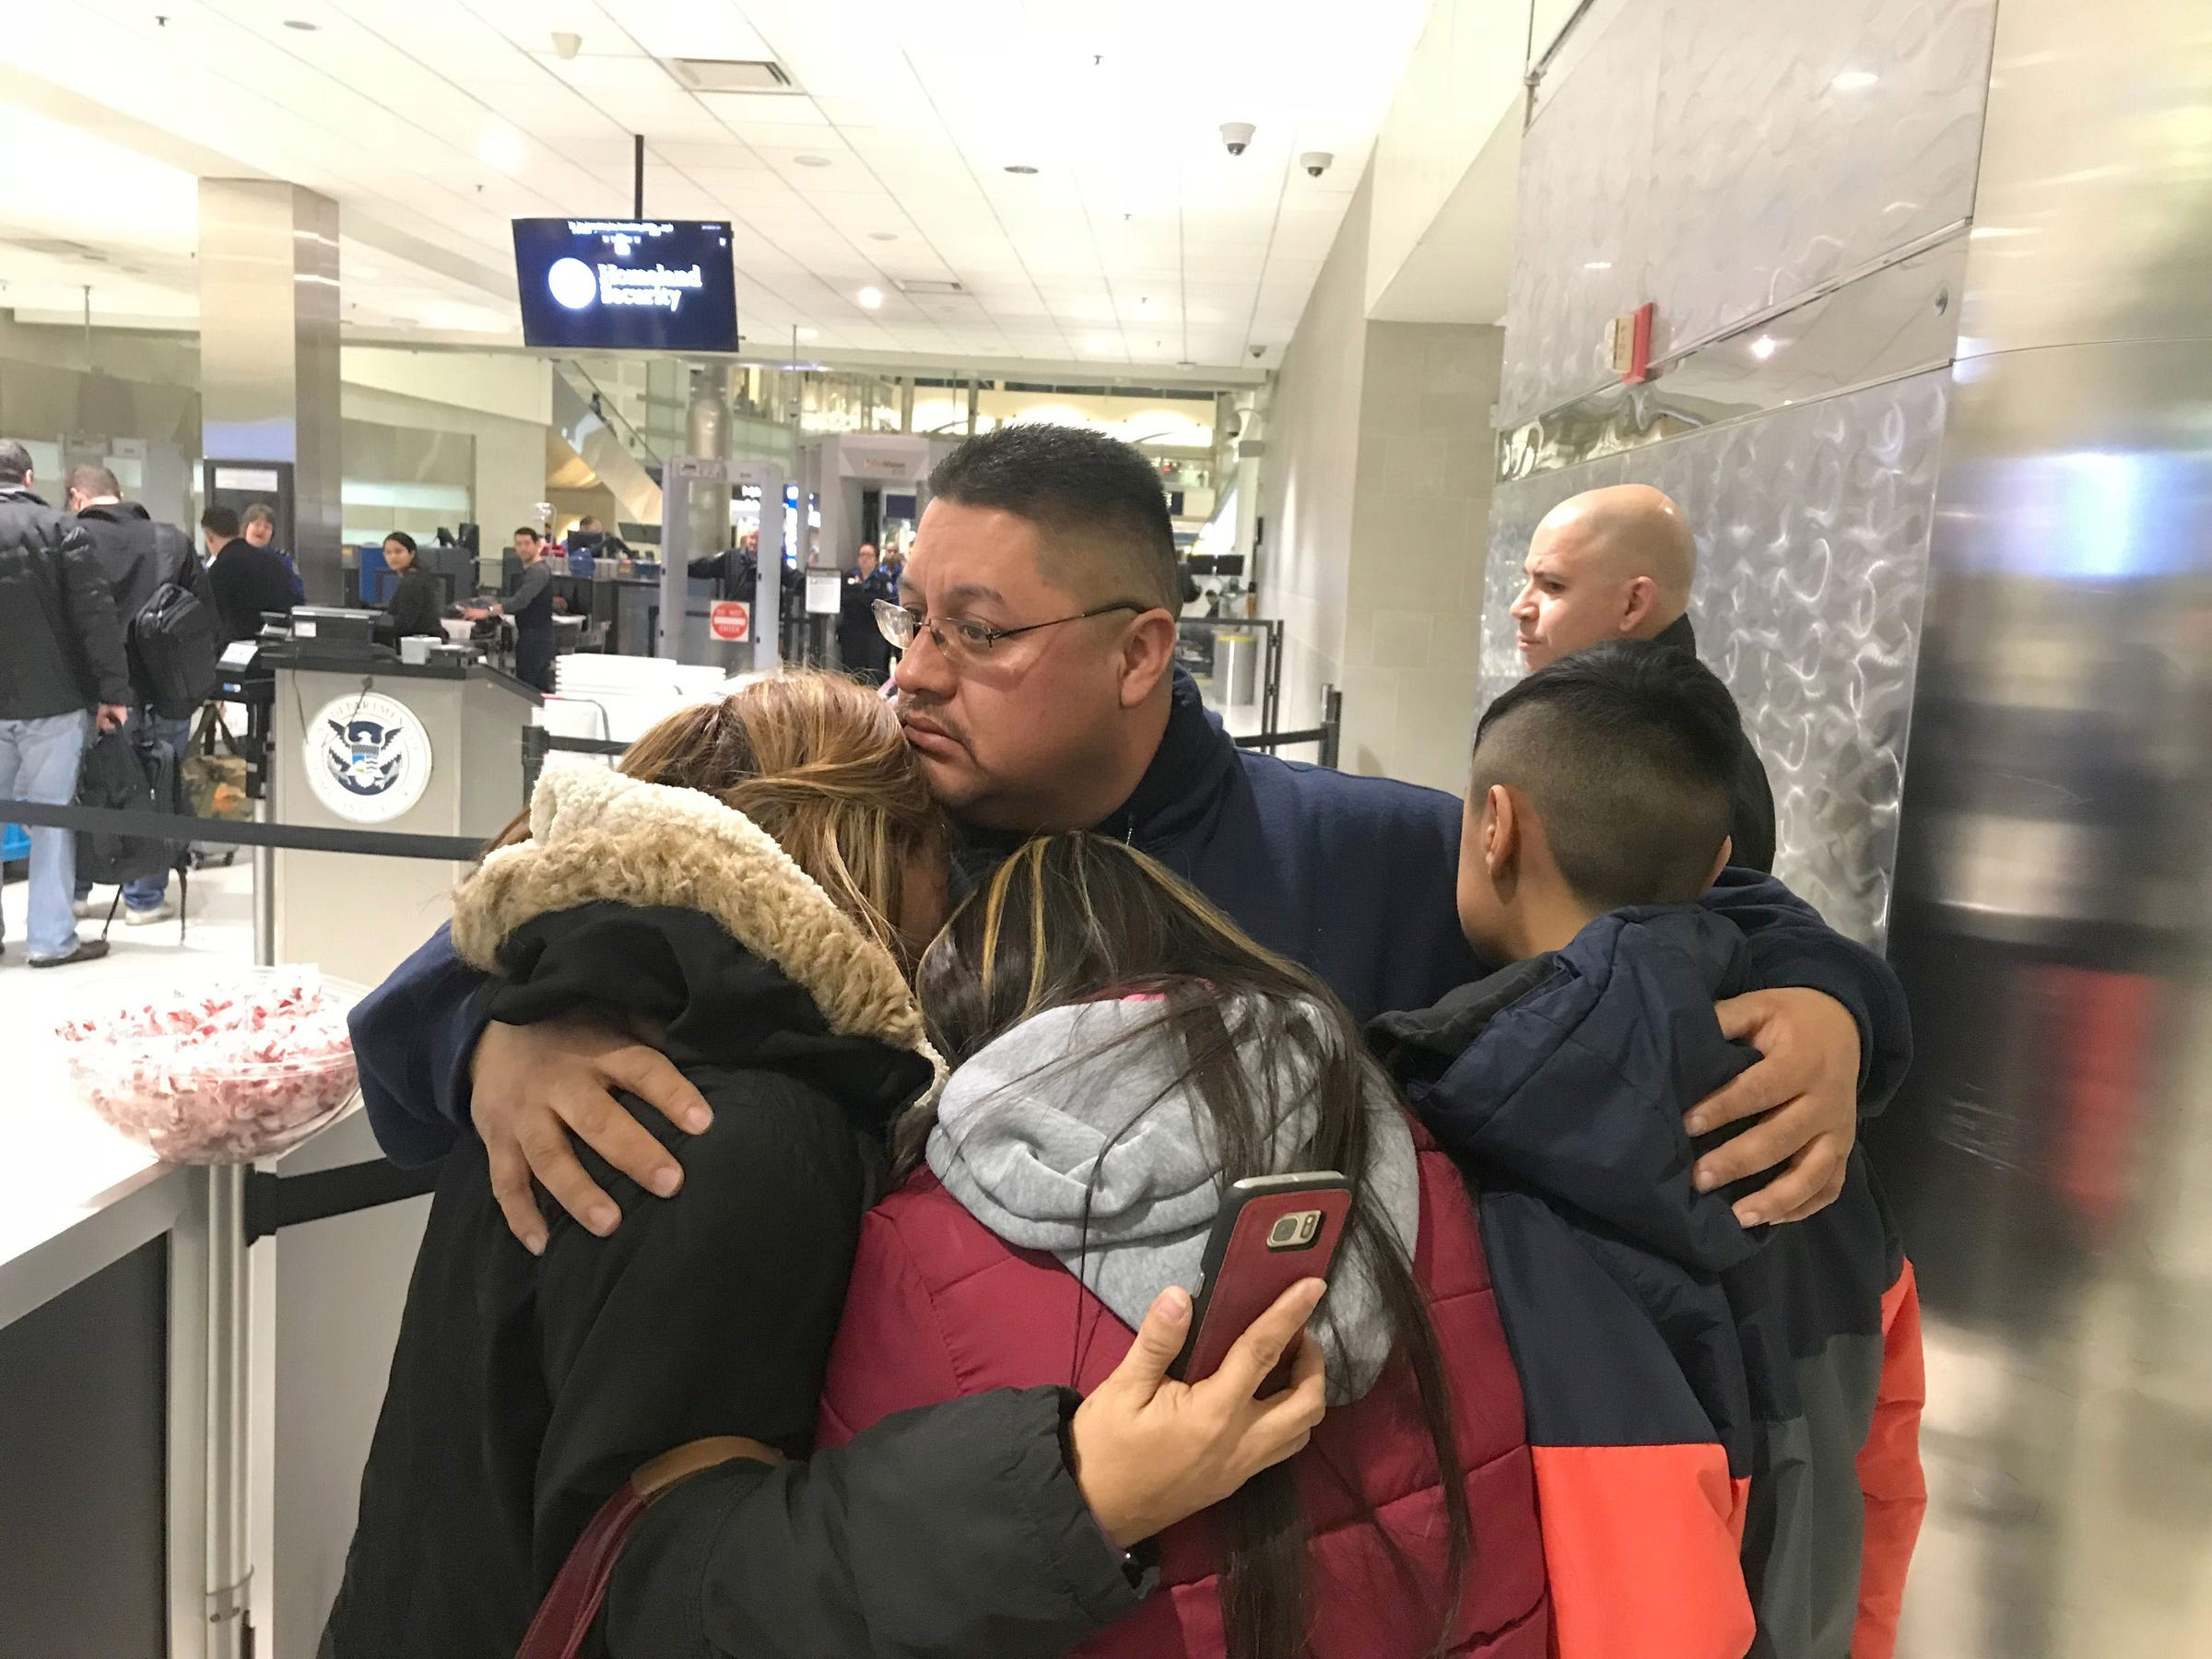 Deported after 30 years in US, father still stuck in Mexico one year later, without wife and kids